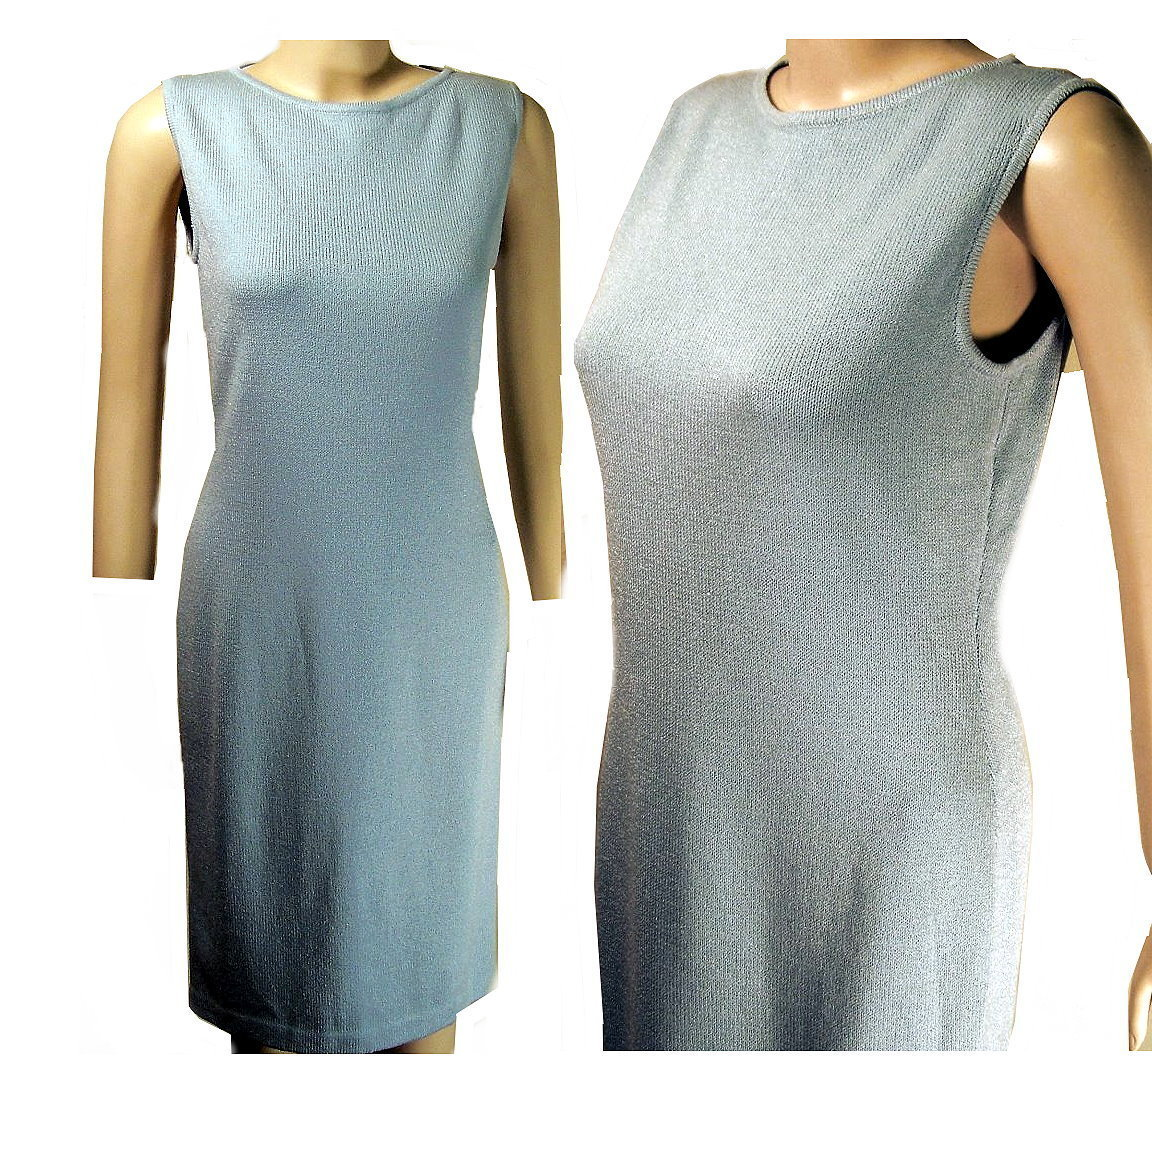 St John Marie Gray santana knit blue dress size 2